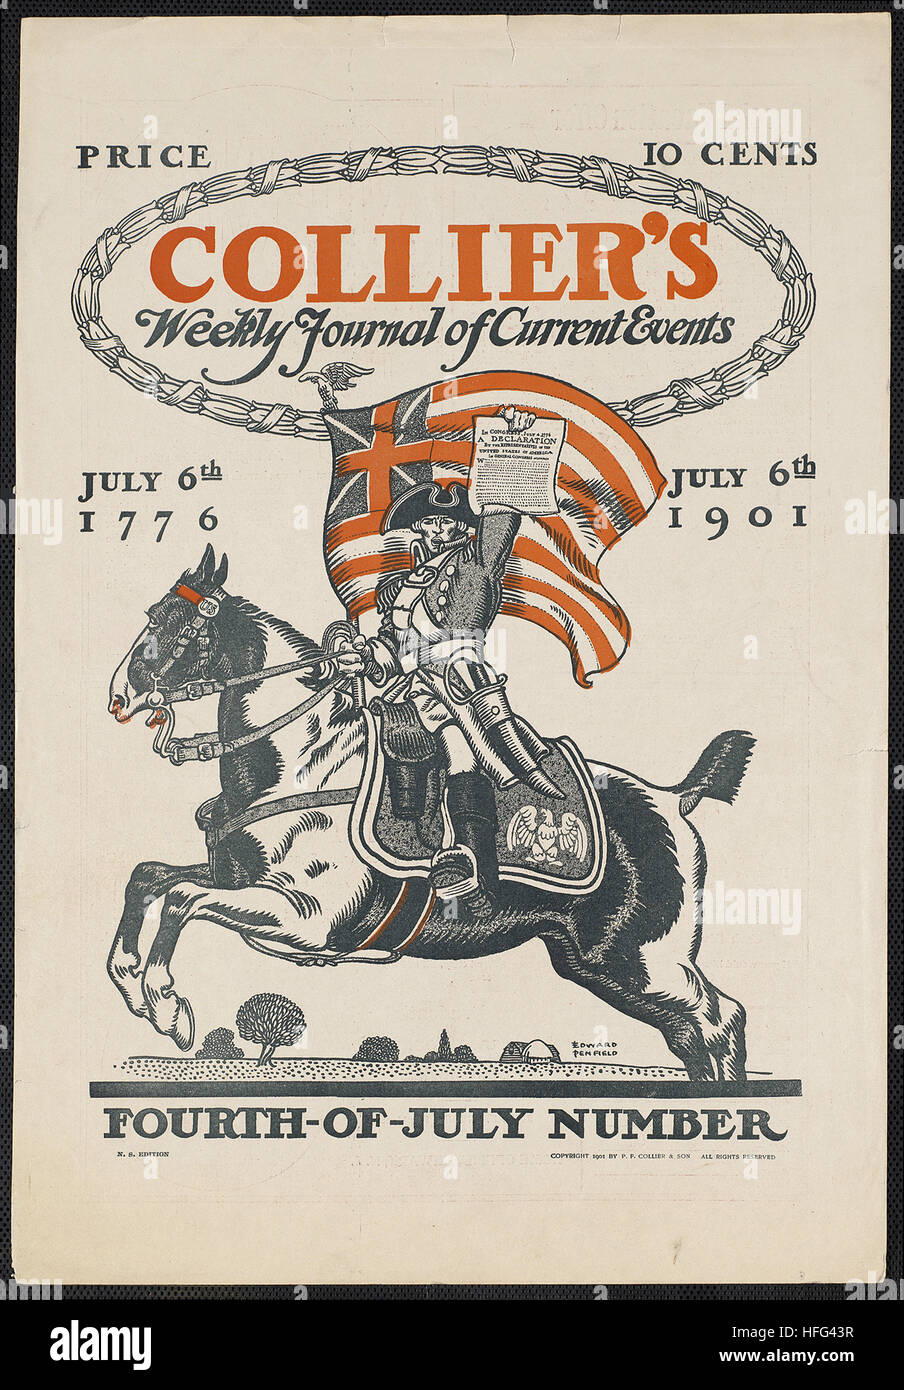 Collier's weekly journal of current events, Fourth-of-July number. July 6th, 1776, July 6th 1901. - Stock Image